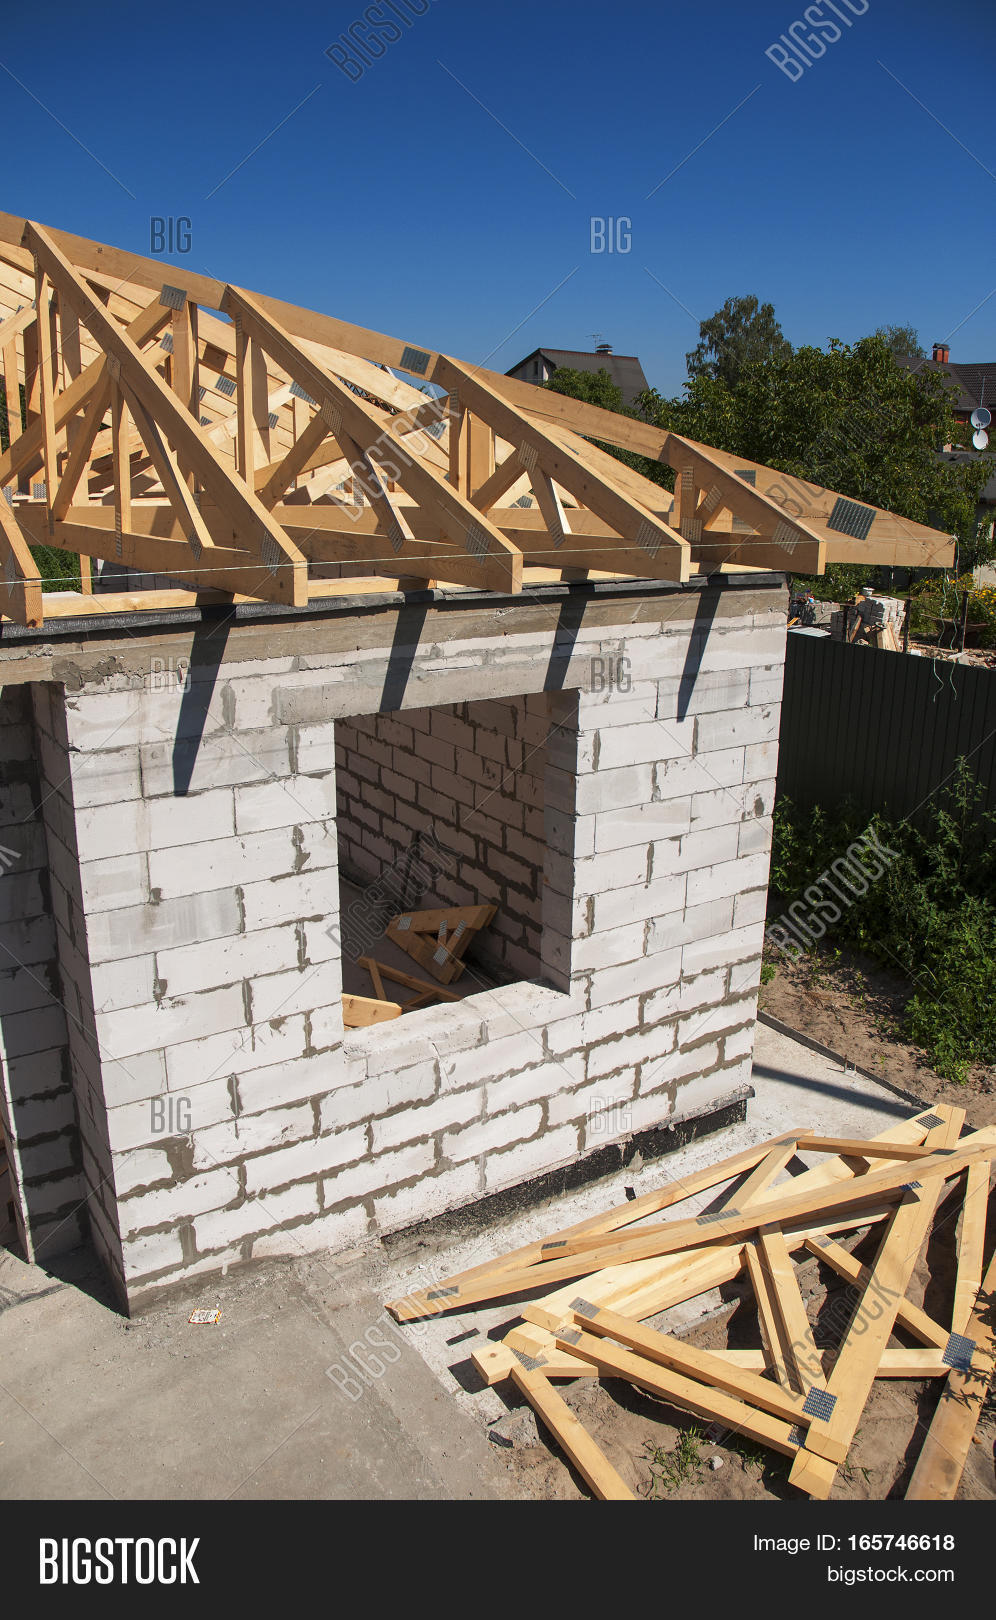 Roofing Construction. Roofing House Construction With Autoclaved Aerated  Concrete (AAC) Also Known As